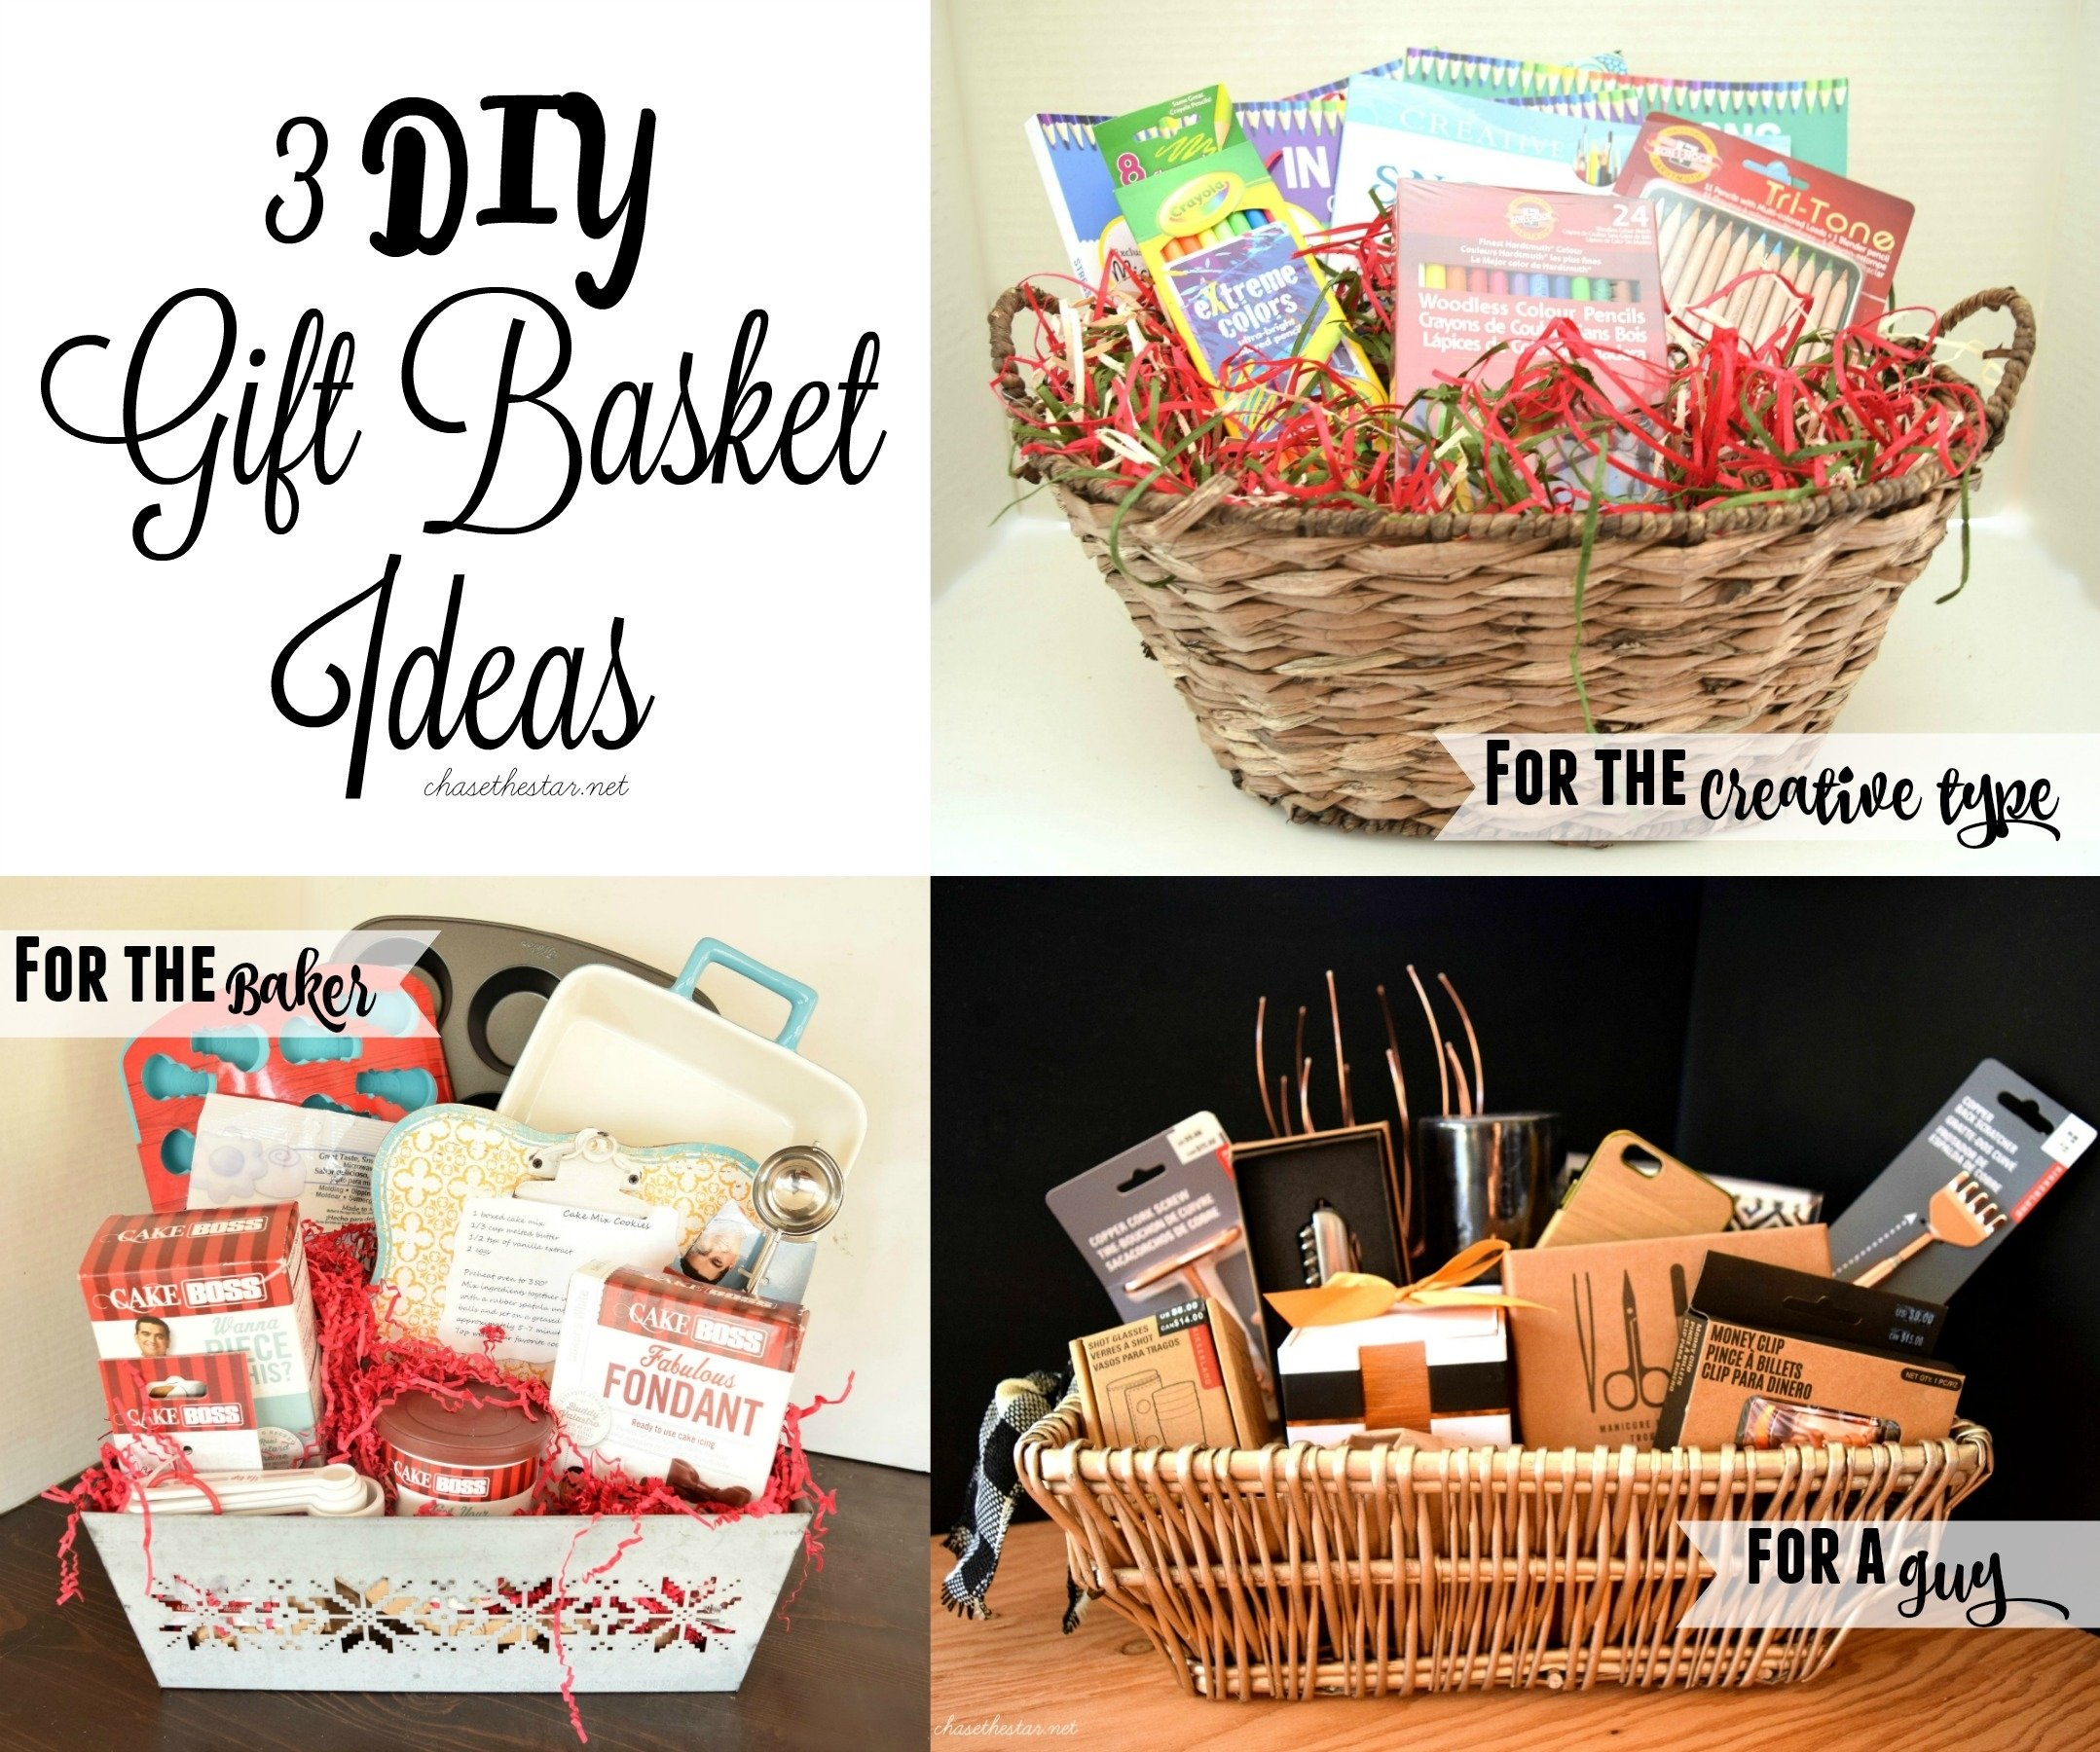 10 Cute Homemade Gift Basket Ideas For Christmas 3 diy gift basket ideas 4 2020